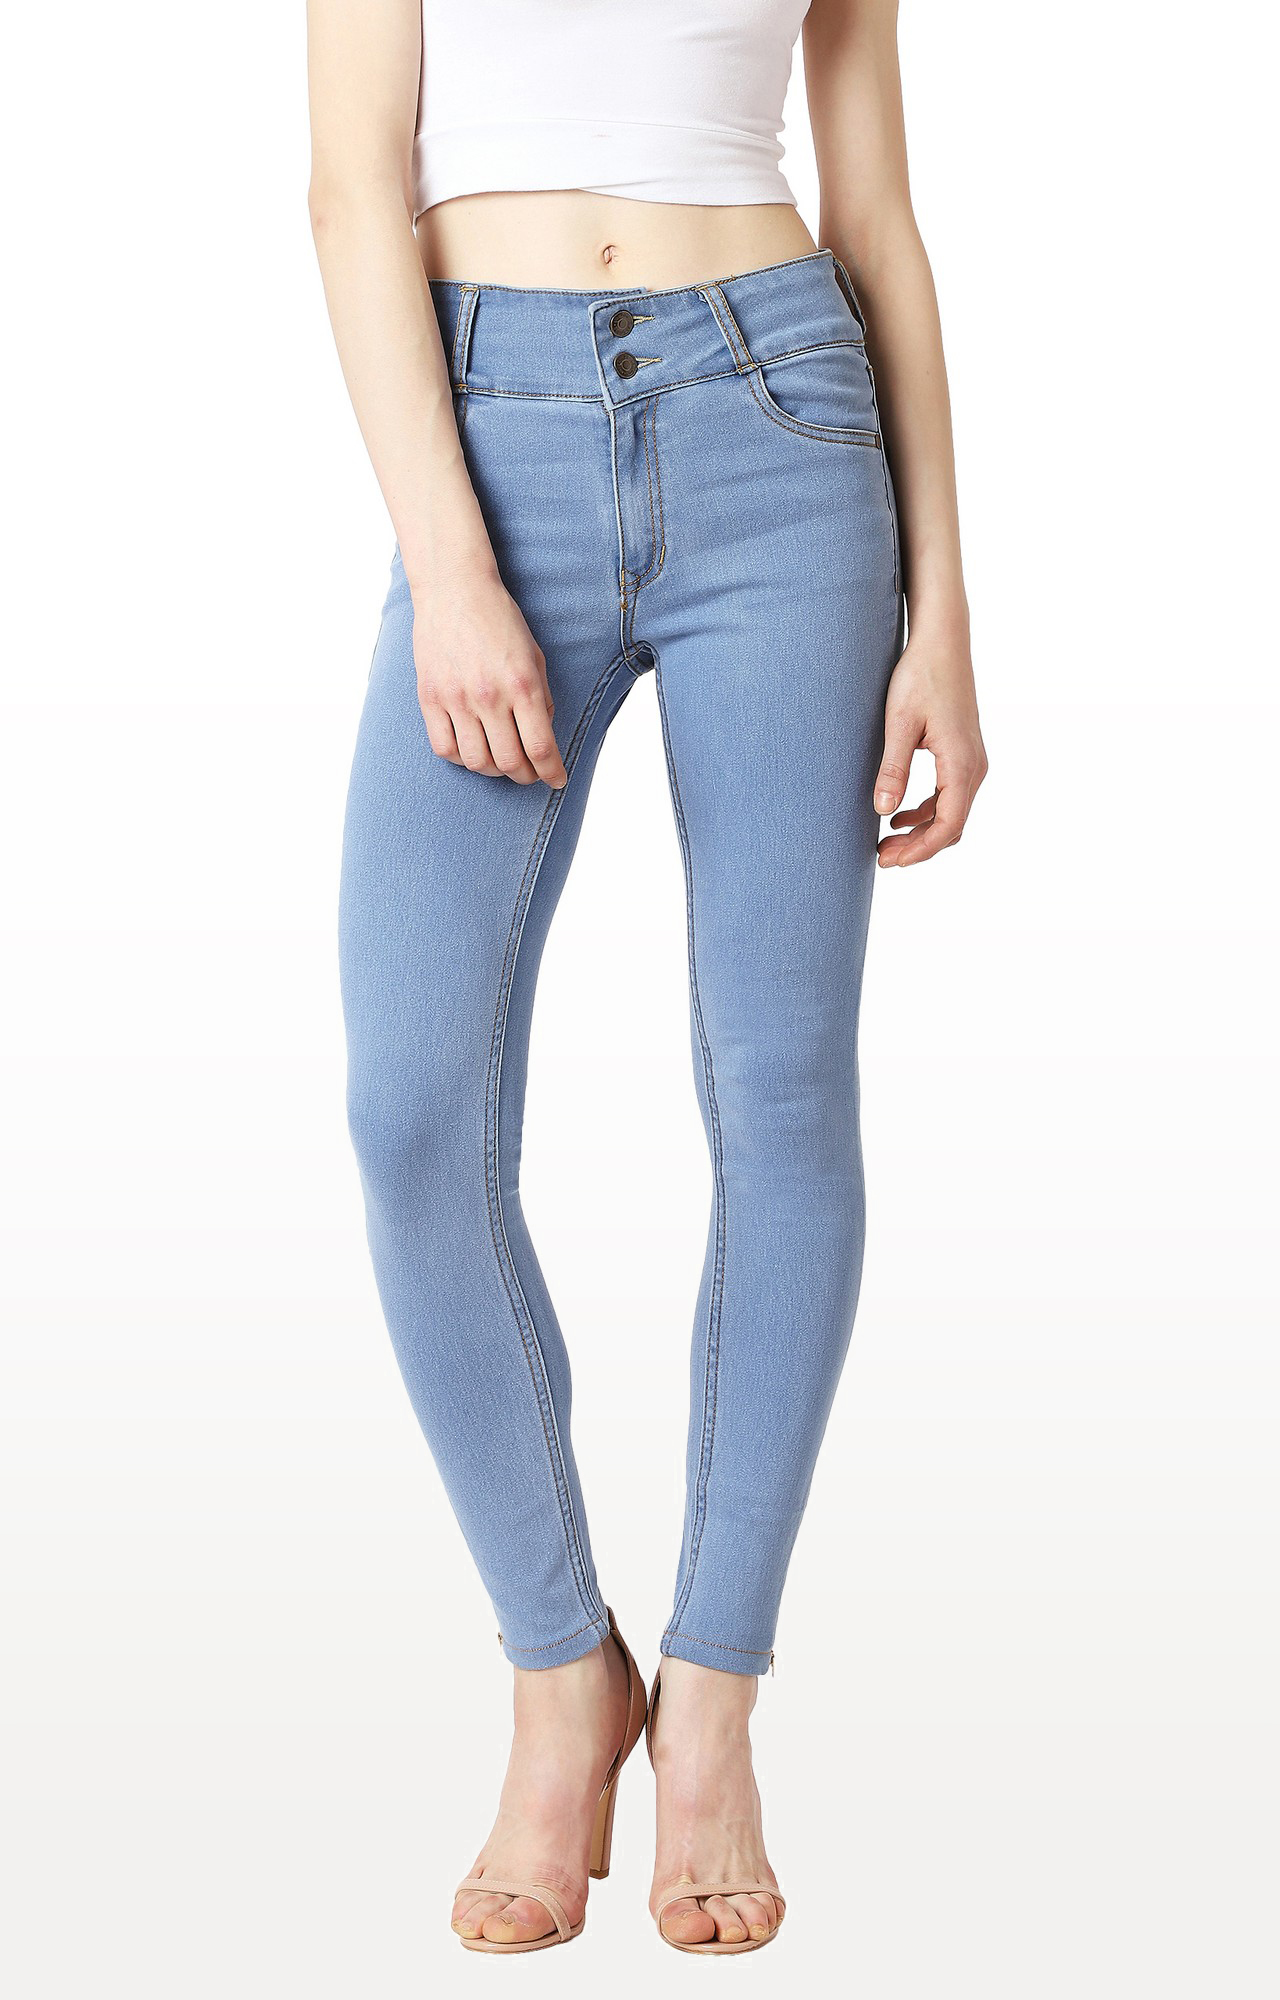 MISS CHASE | Blue Solid High Rise Broad Waist Band Zipper Detailing Clean Look Jeans